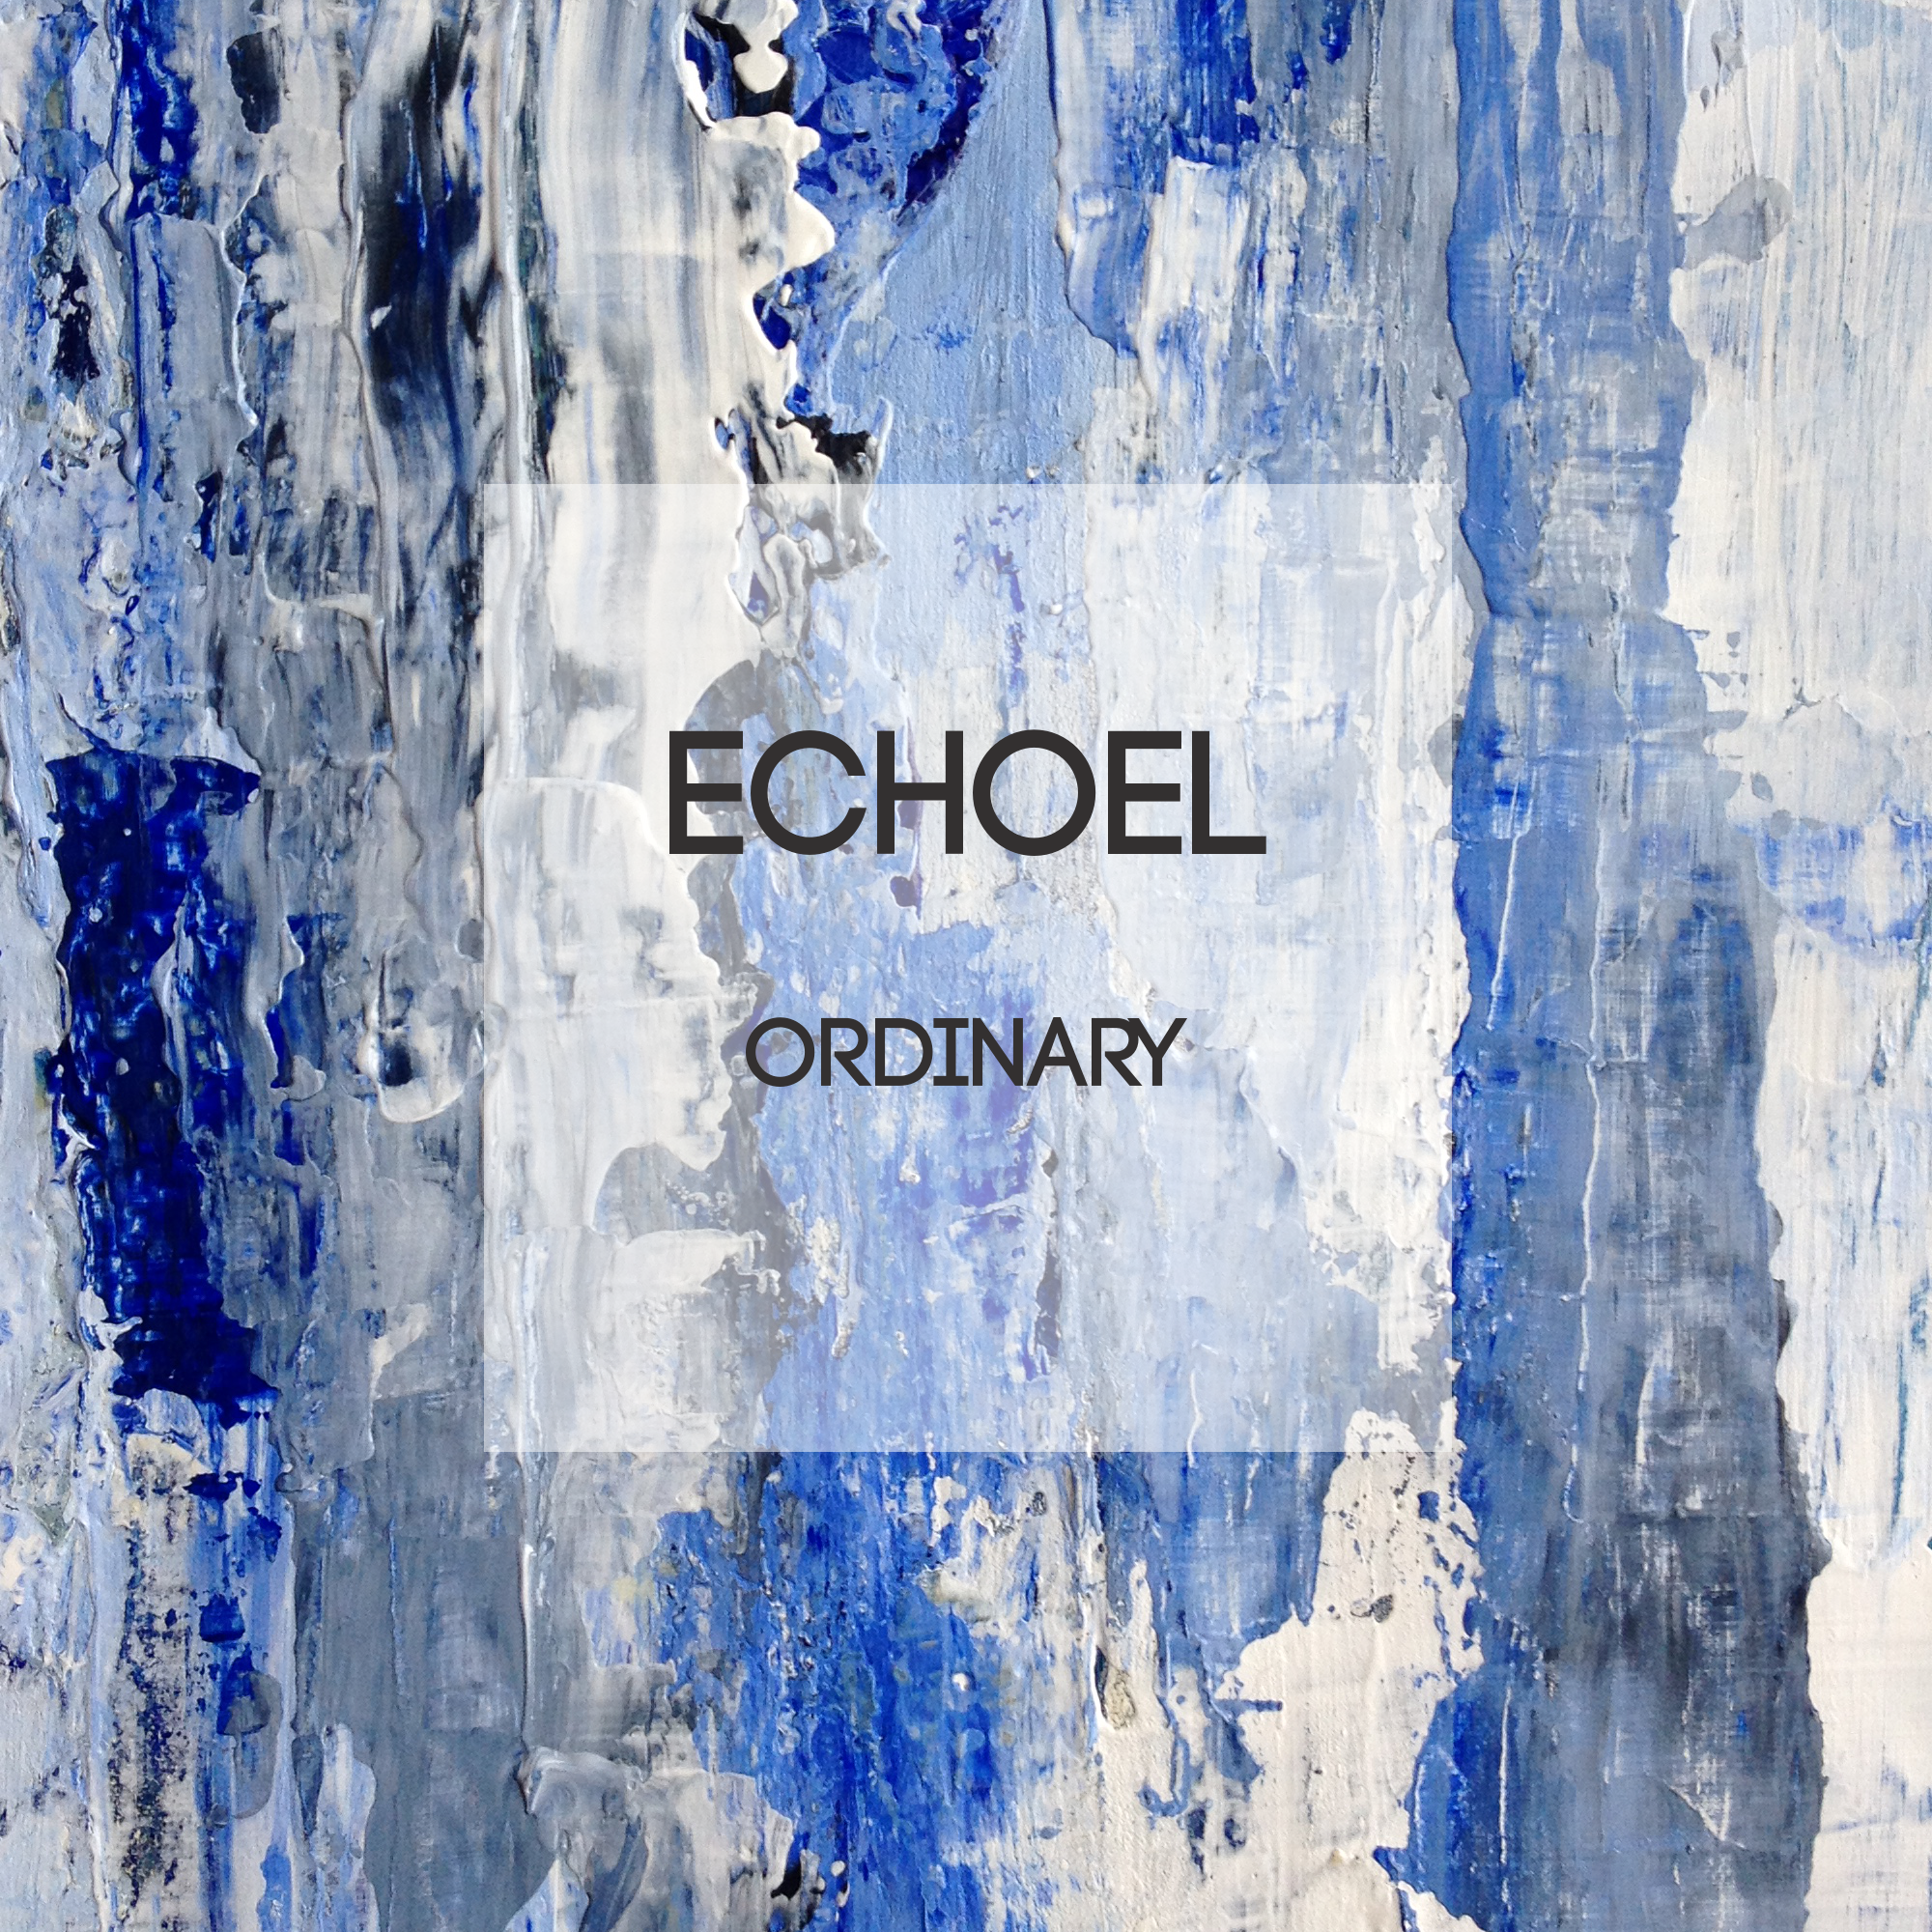 echoel_ordinary_ep_cover.png